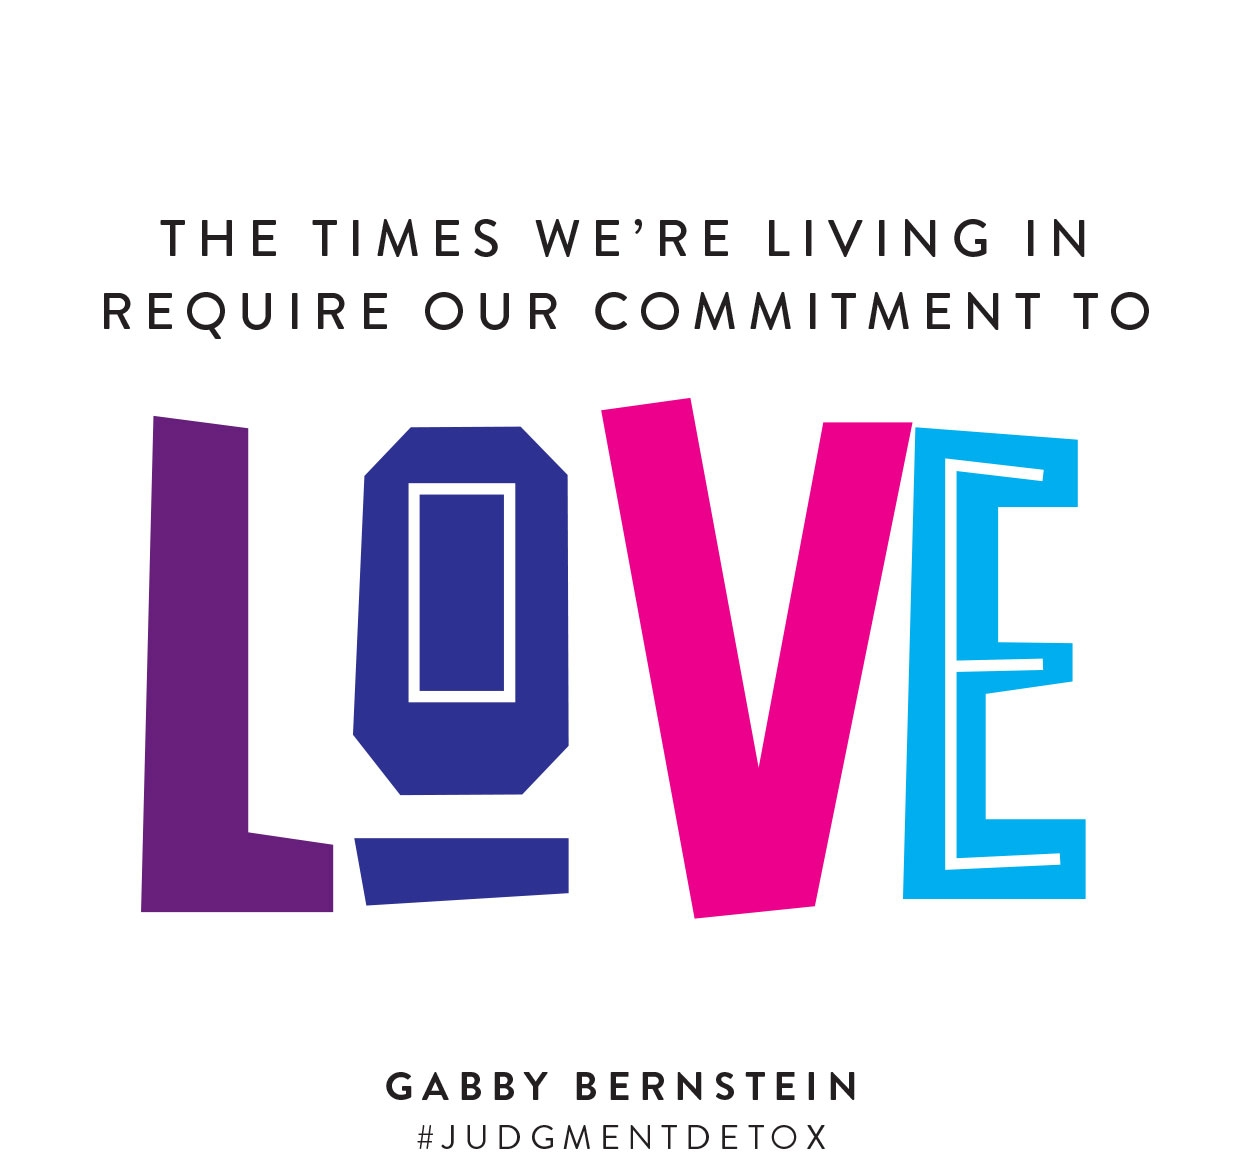 The times we're living in require our commitment to love | Gabby Bernstein | Judgment Detox